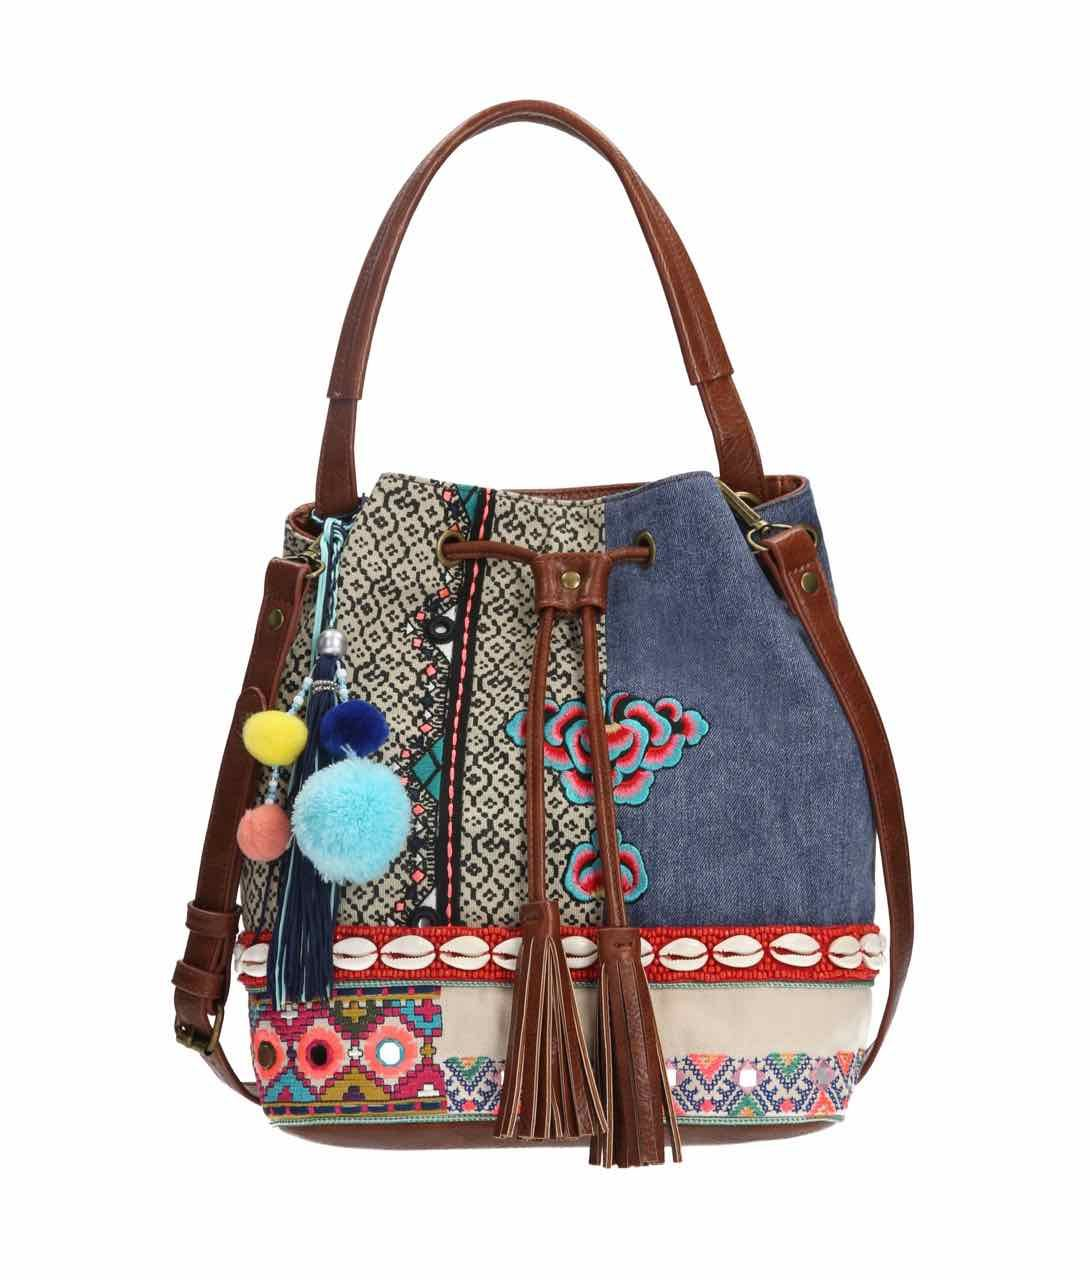 61x52a6 3004 Desigual Bag Arosa Silvana Backpack